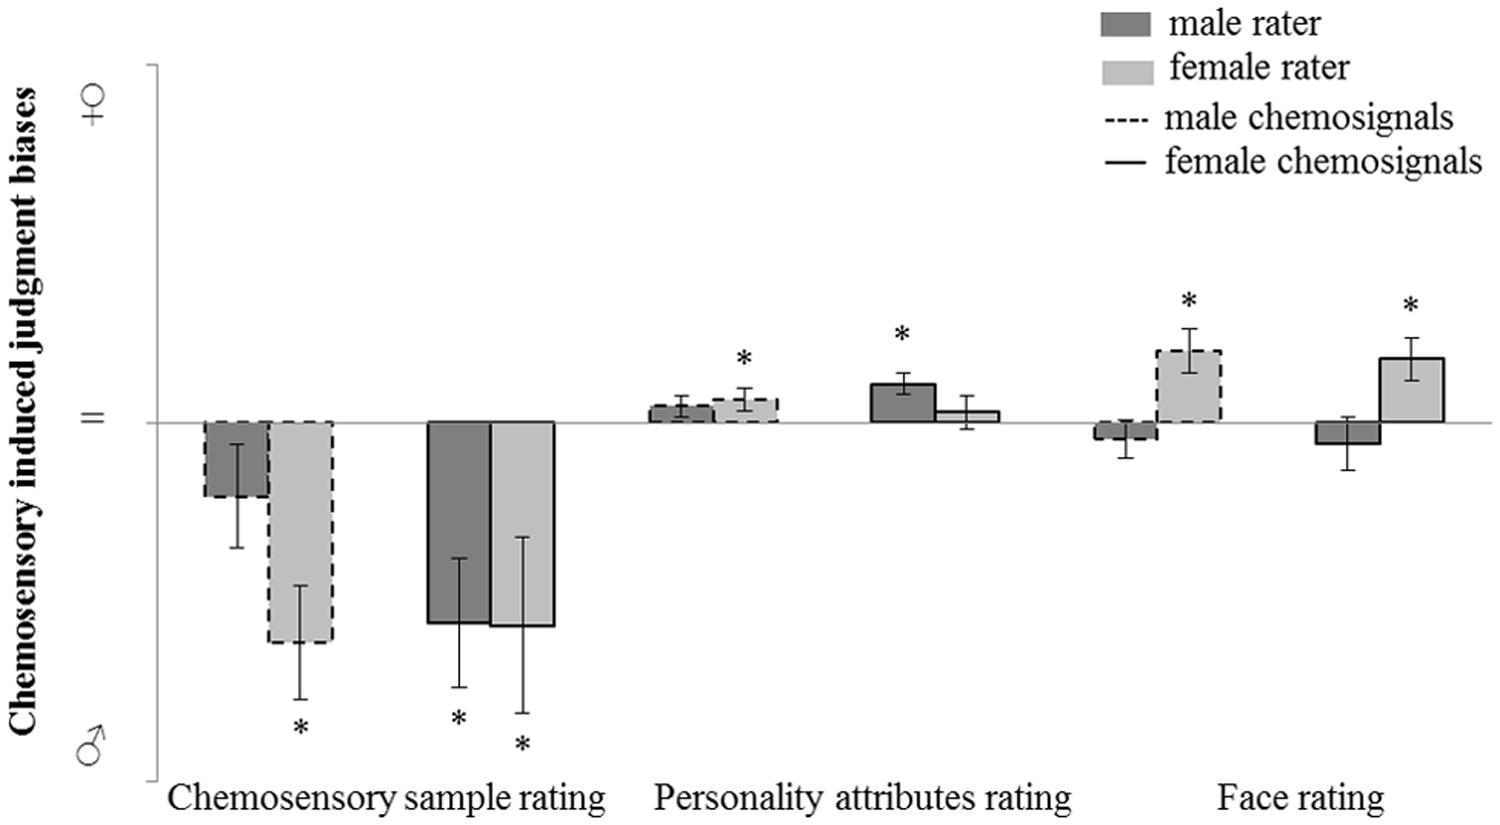 Chemosensory communication of gender through two human steroids in a sexually dimorphic manner